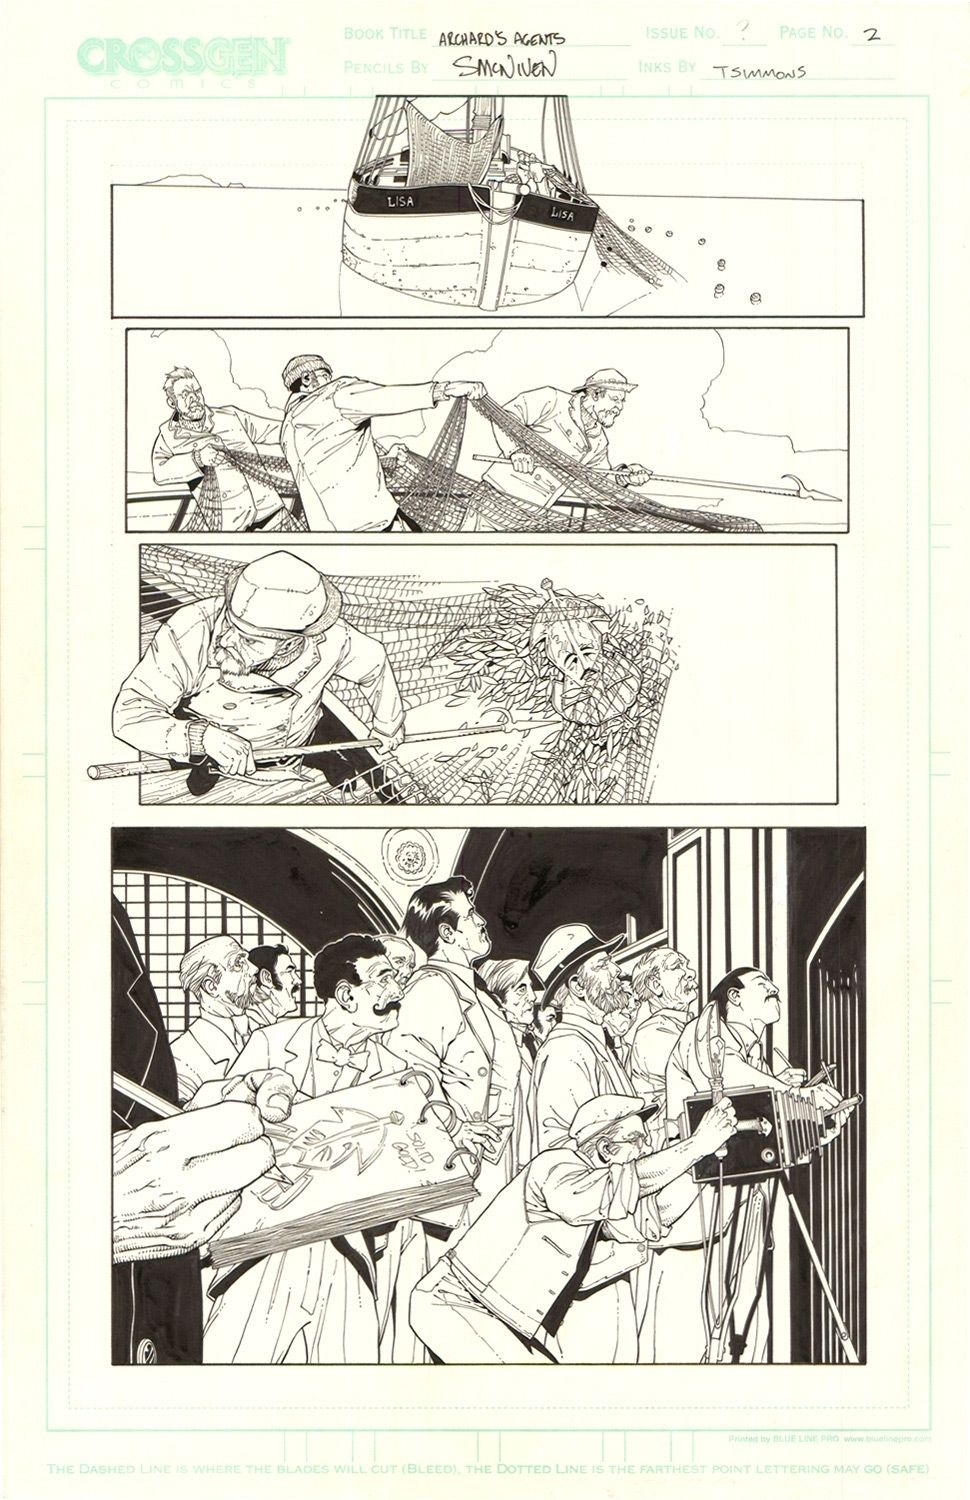 Archard's Agents #3 / 2